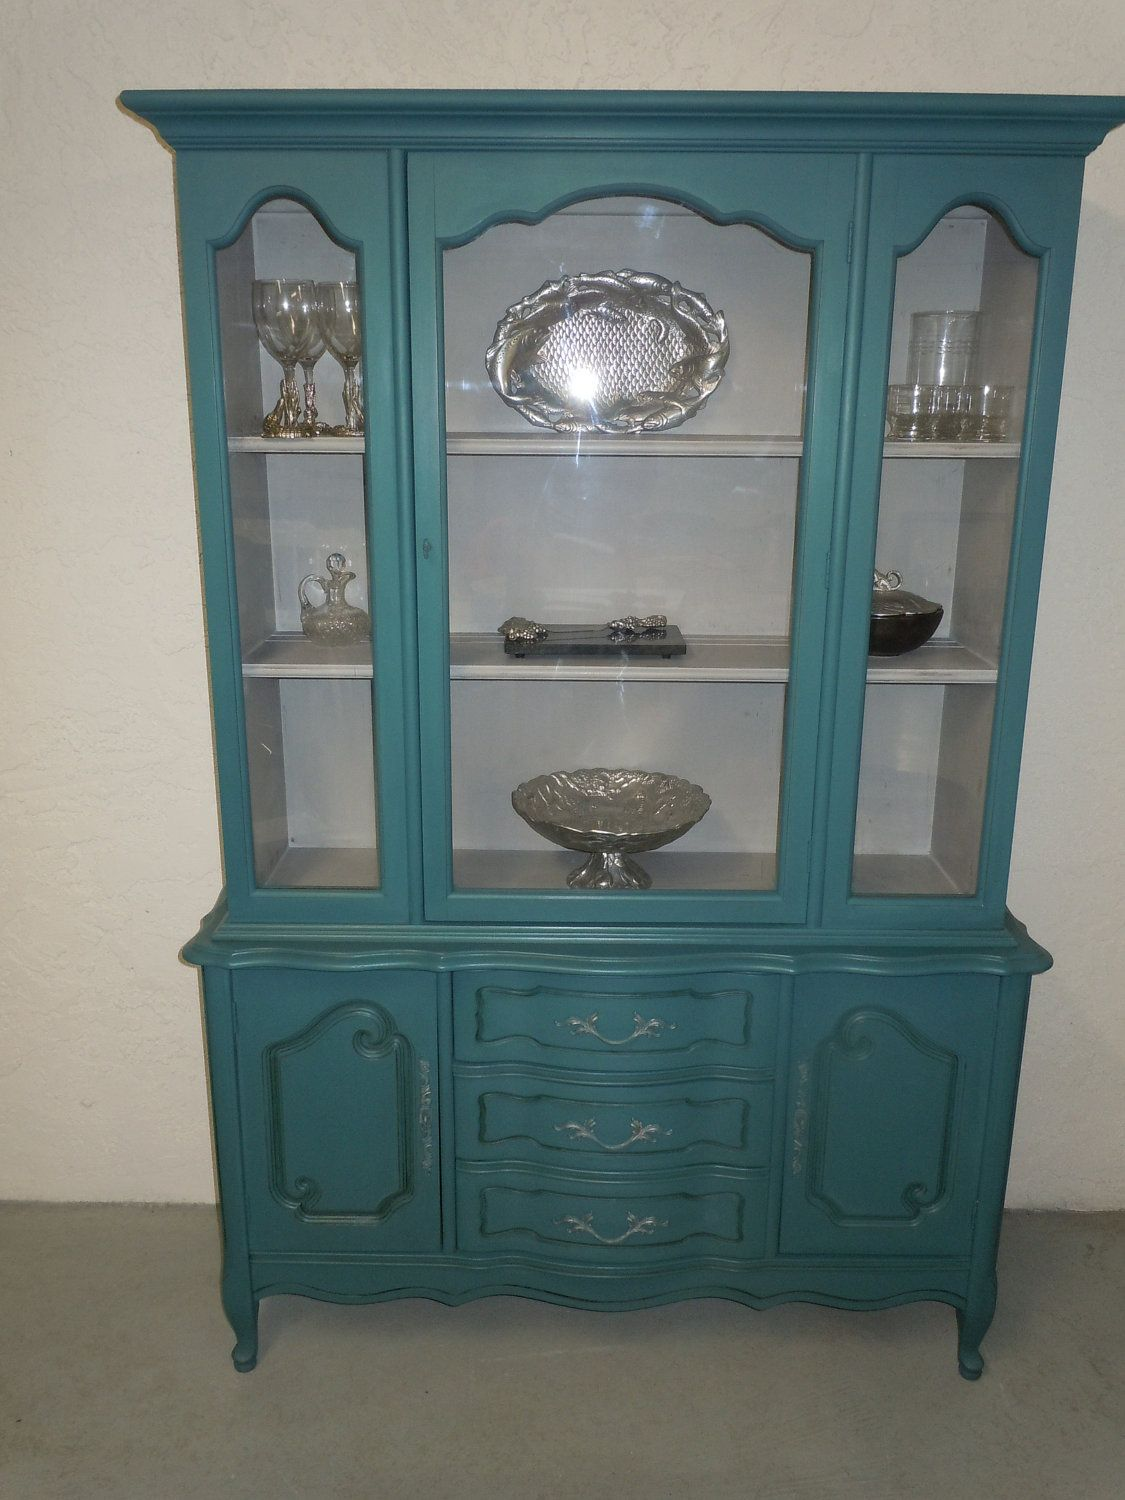 Reserve French Provincial China Cabinet In Teal Or